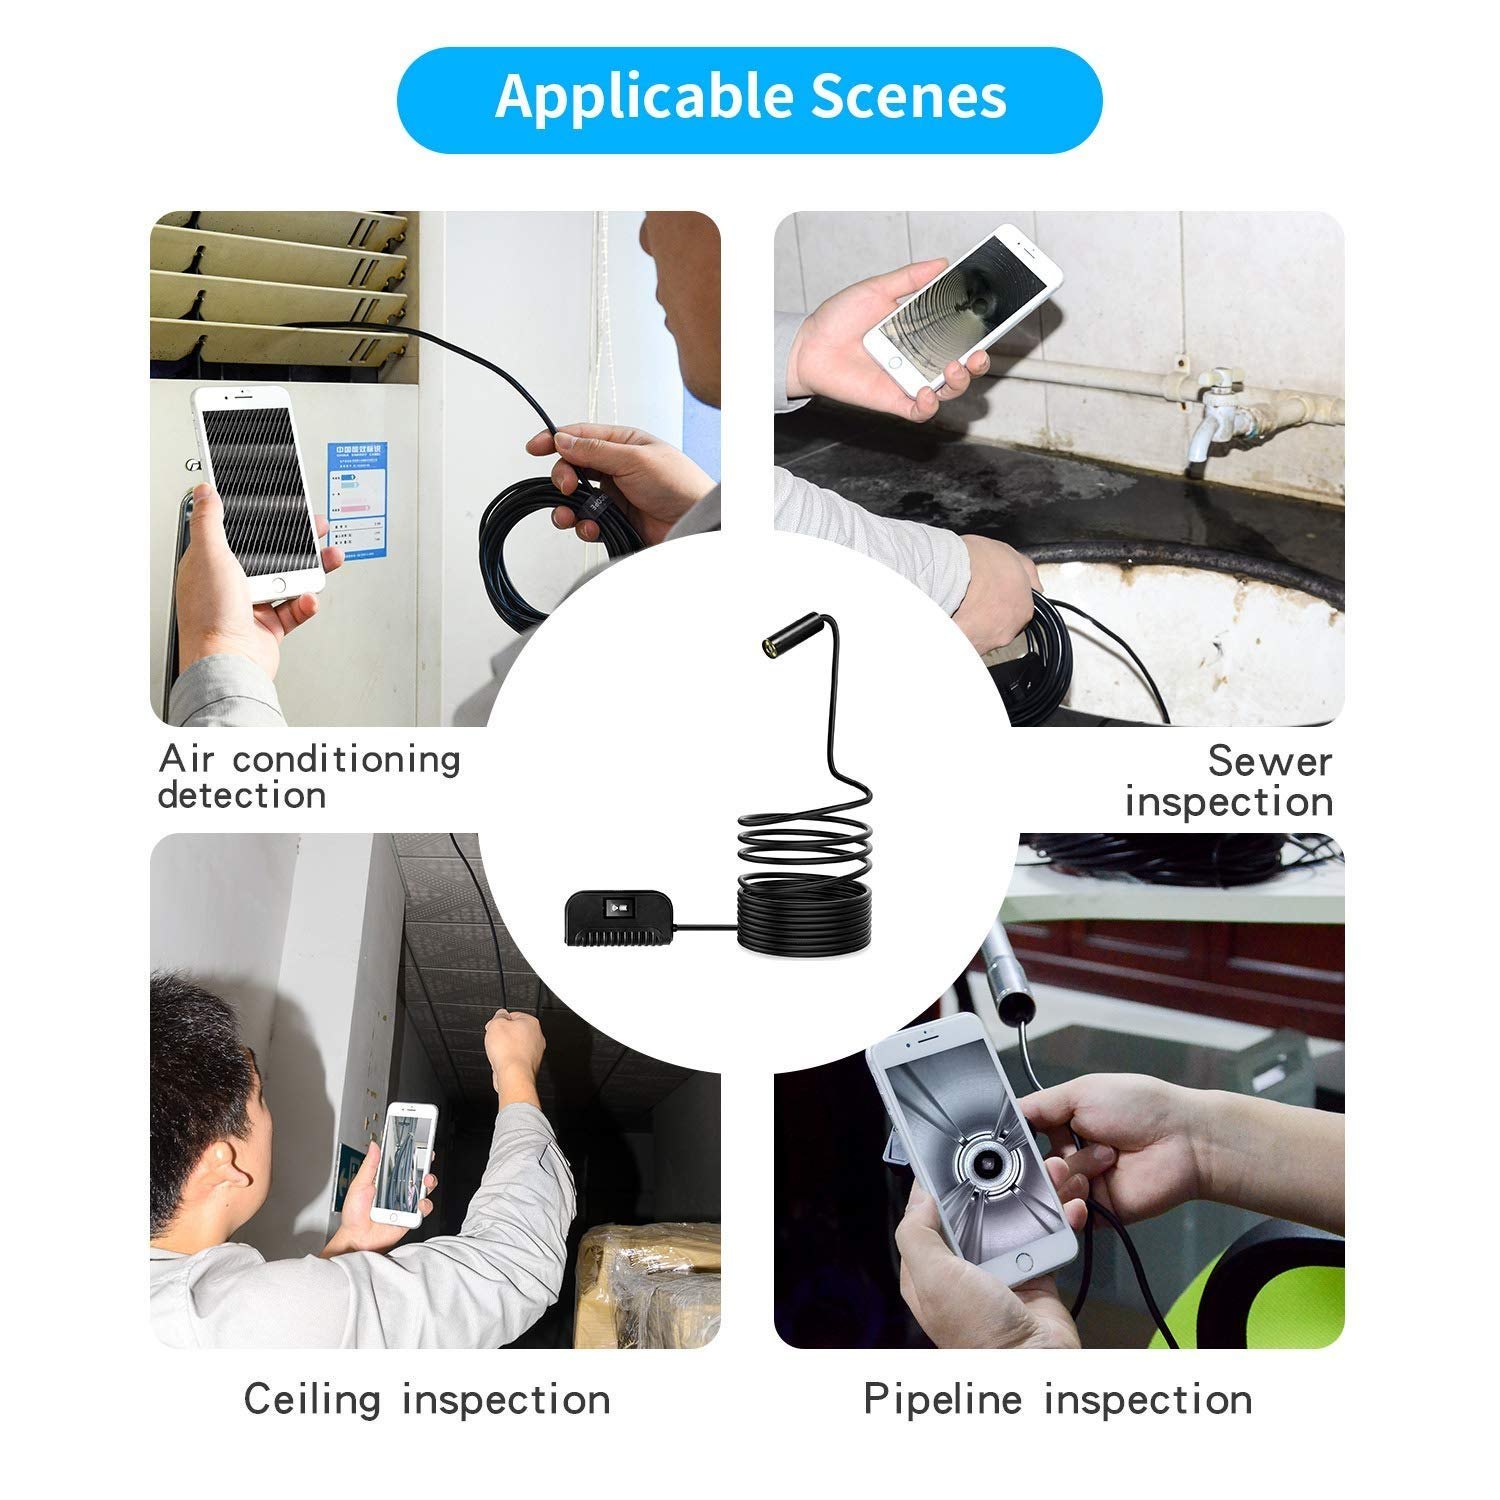 4 Dimmable LED Auto Focus WiFi Endoscope 5.0 Megapixels HD Snake Camera Borescope IP68 Waterproof Android QYLT 1944P Wireless Inspection Camera Compatible with iOS